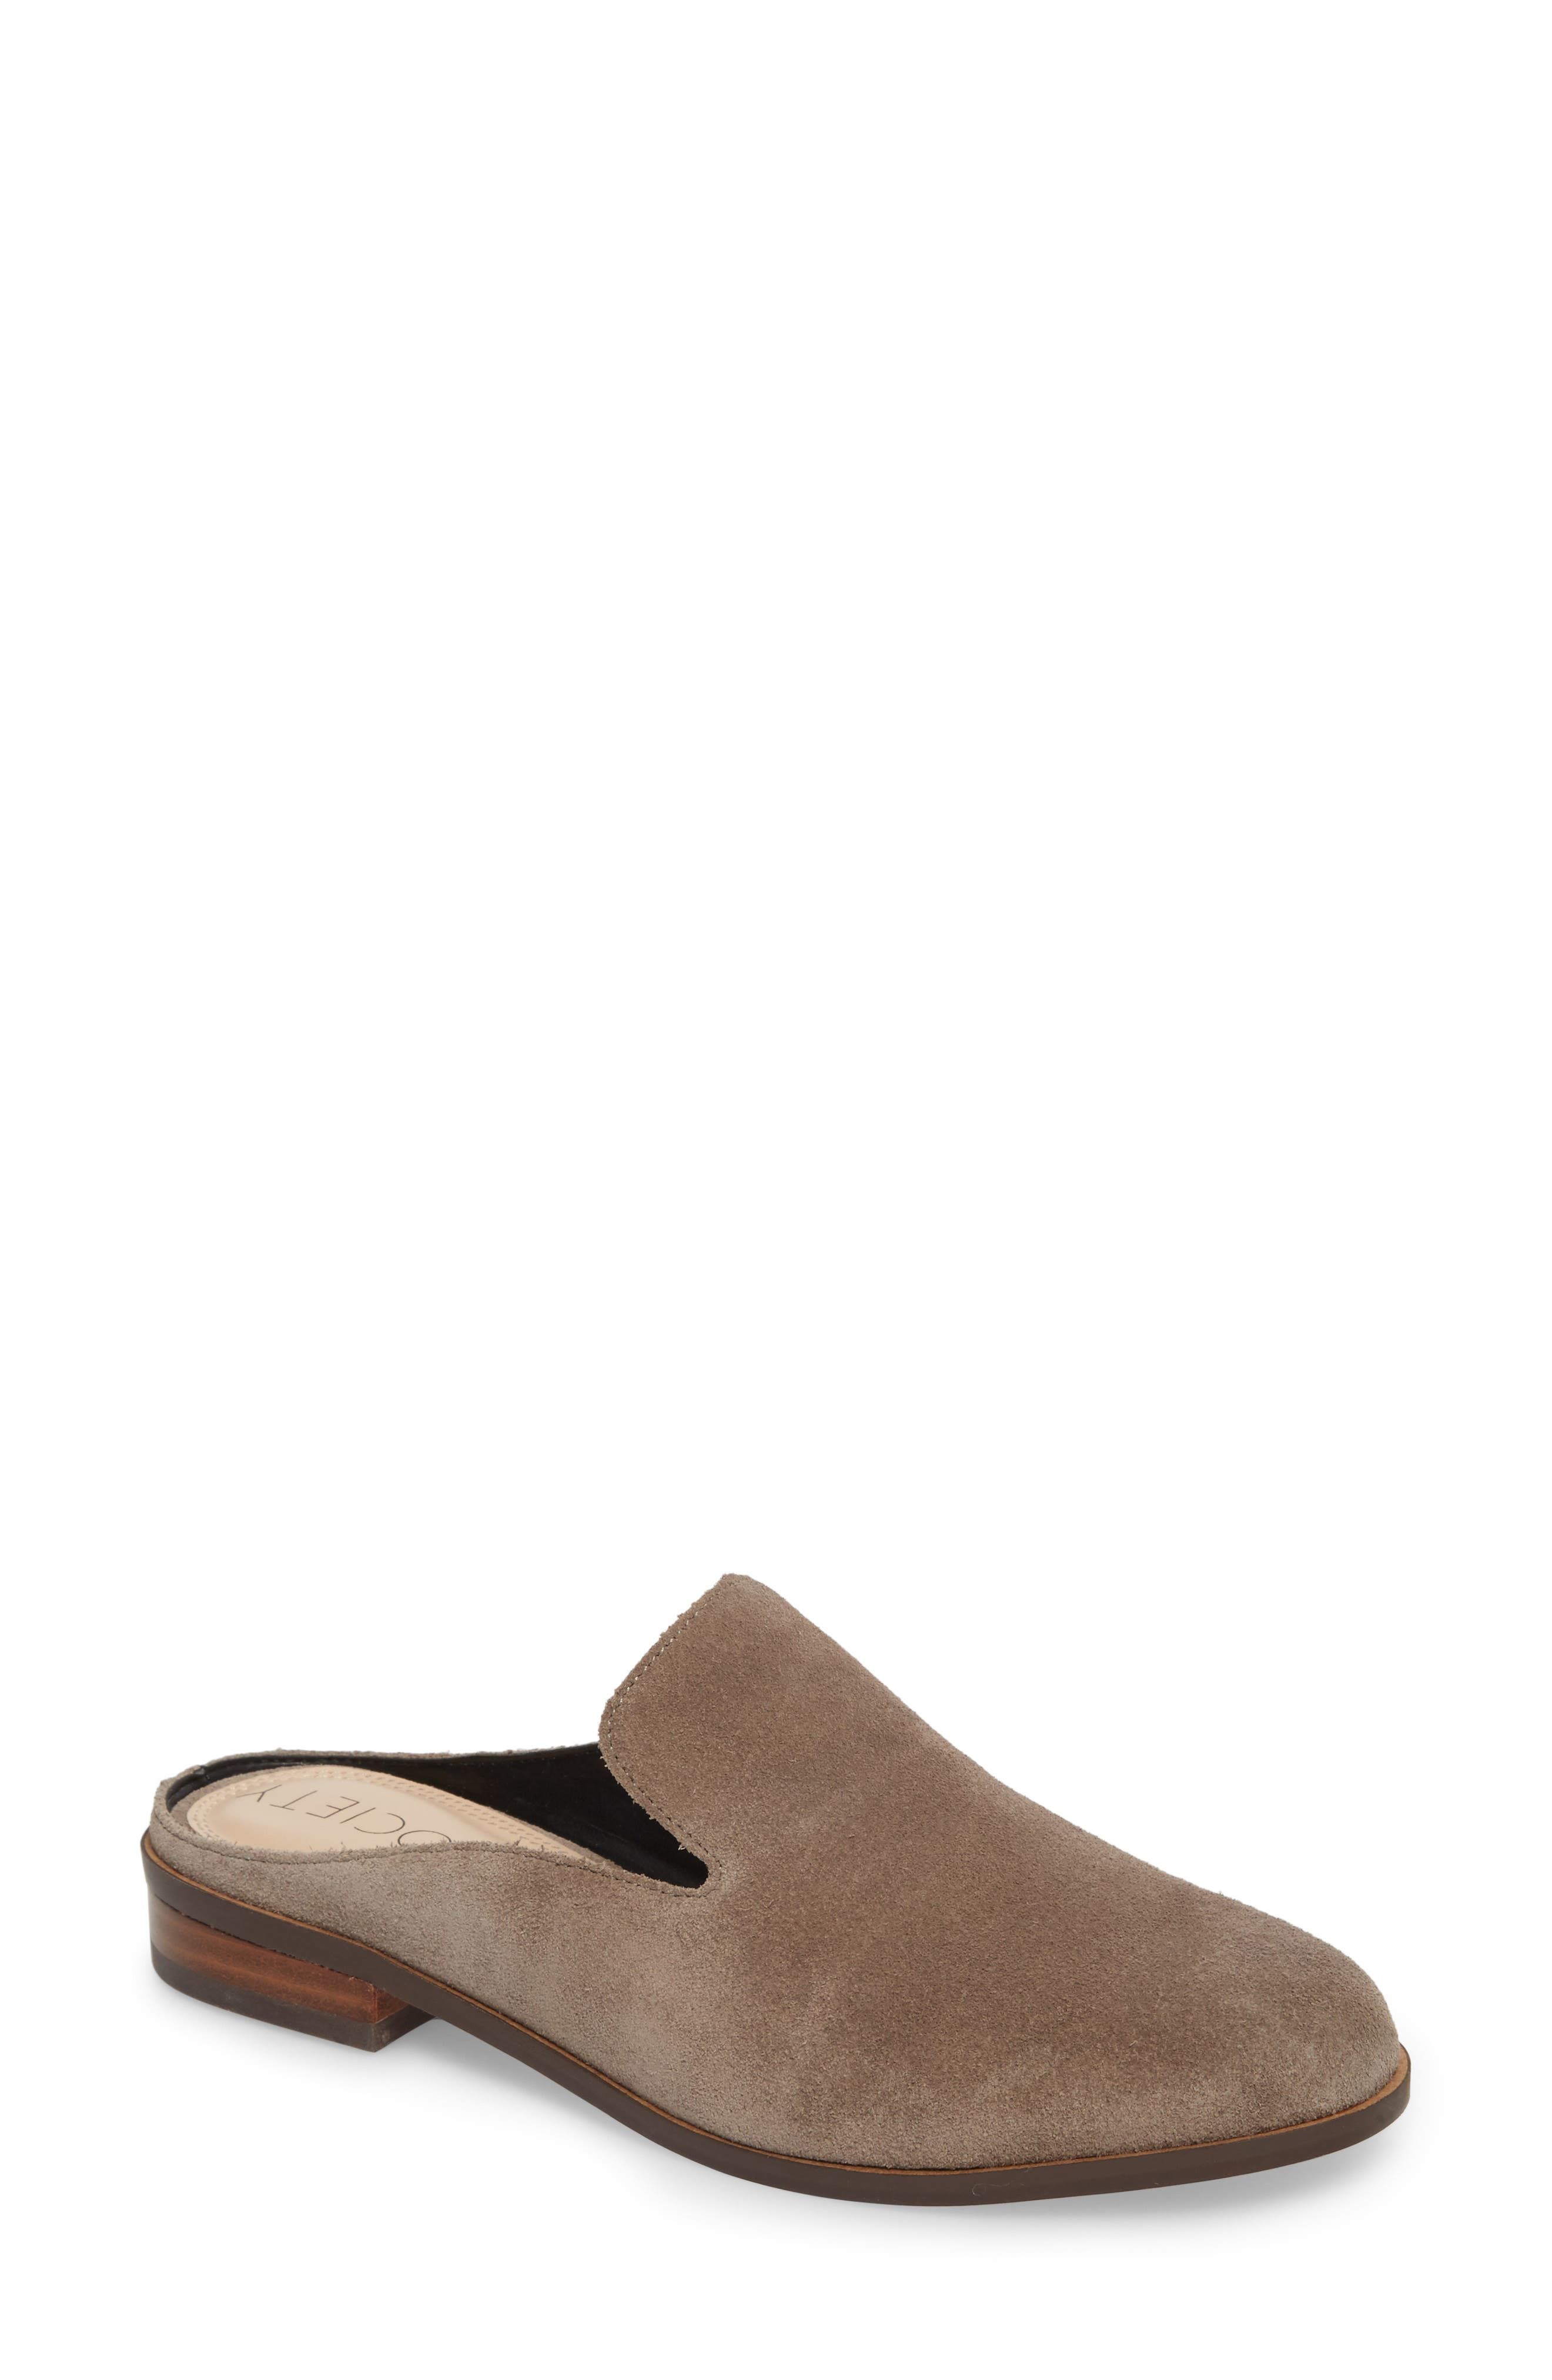 Esther Loafer Mule,                             Main thumbnail 1, color,